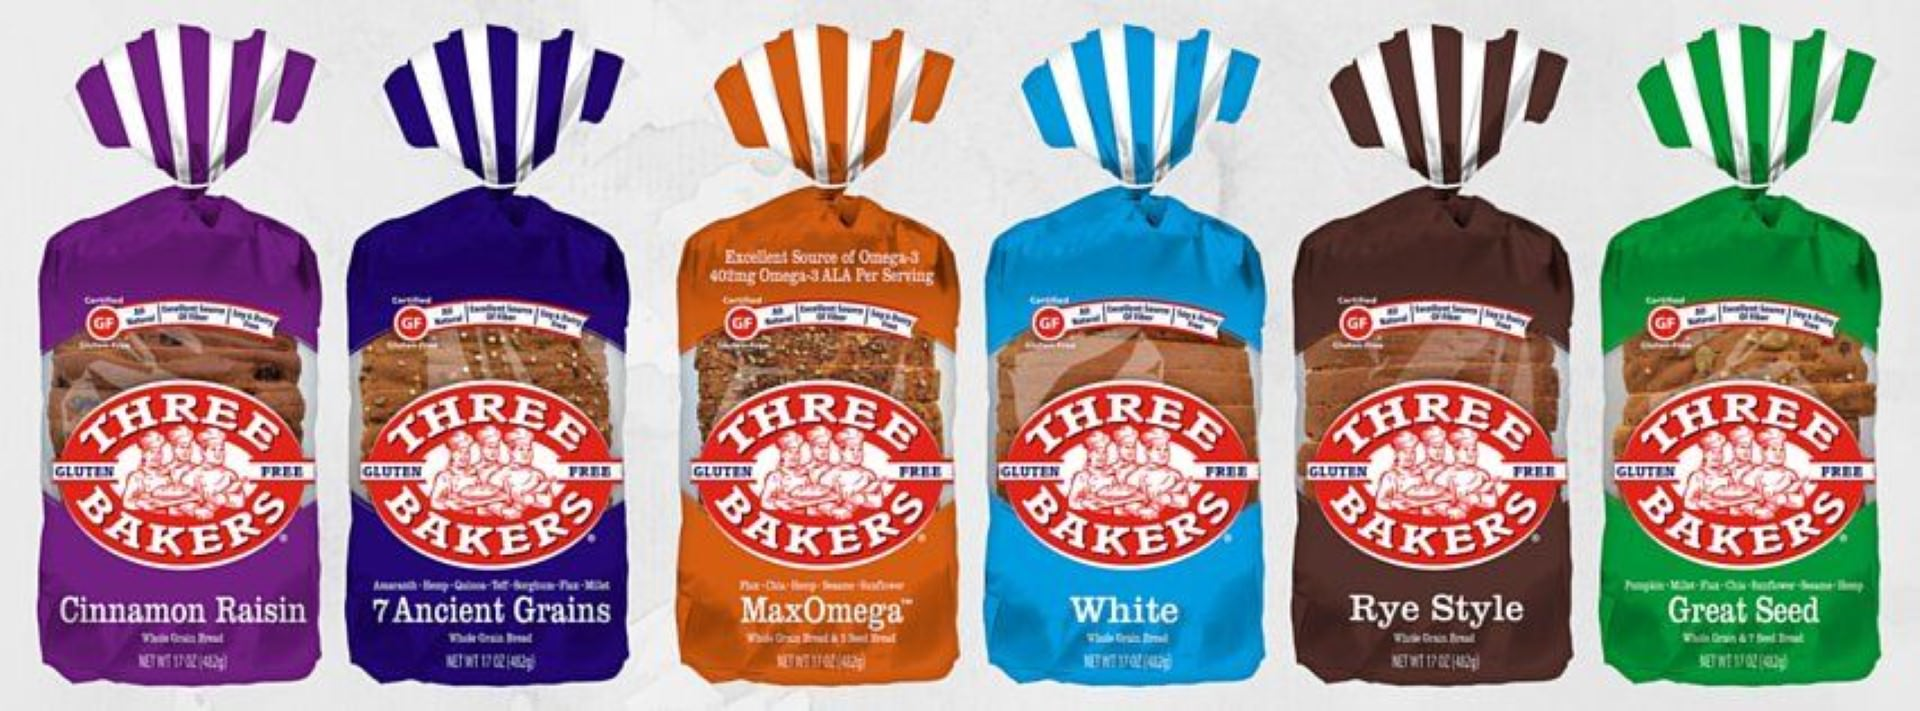 Introducing New Three Bakers Bread Packaging Three Bakers